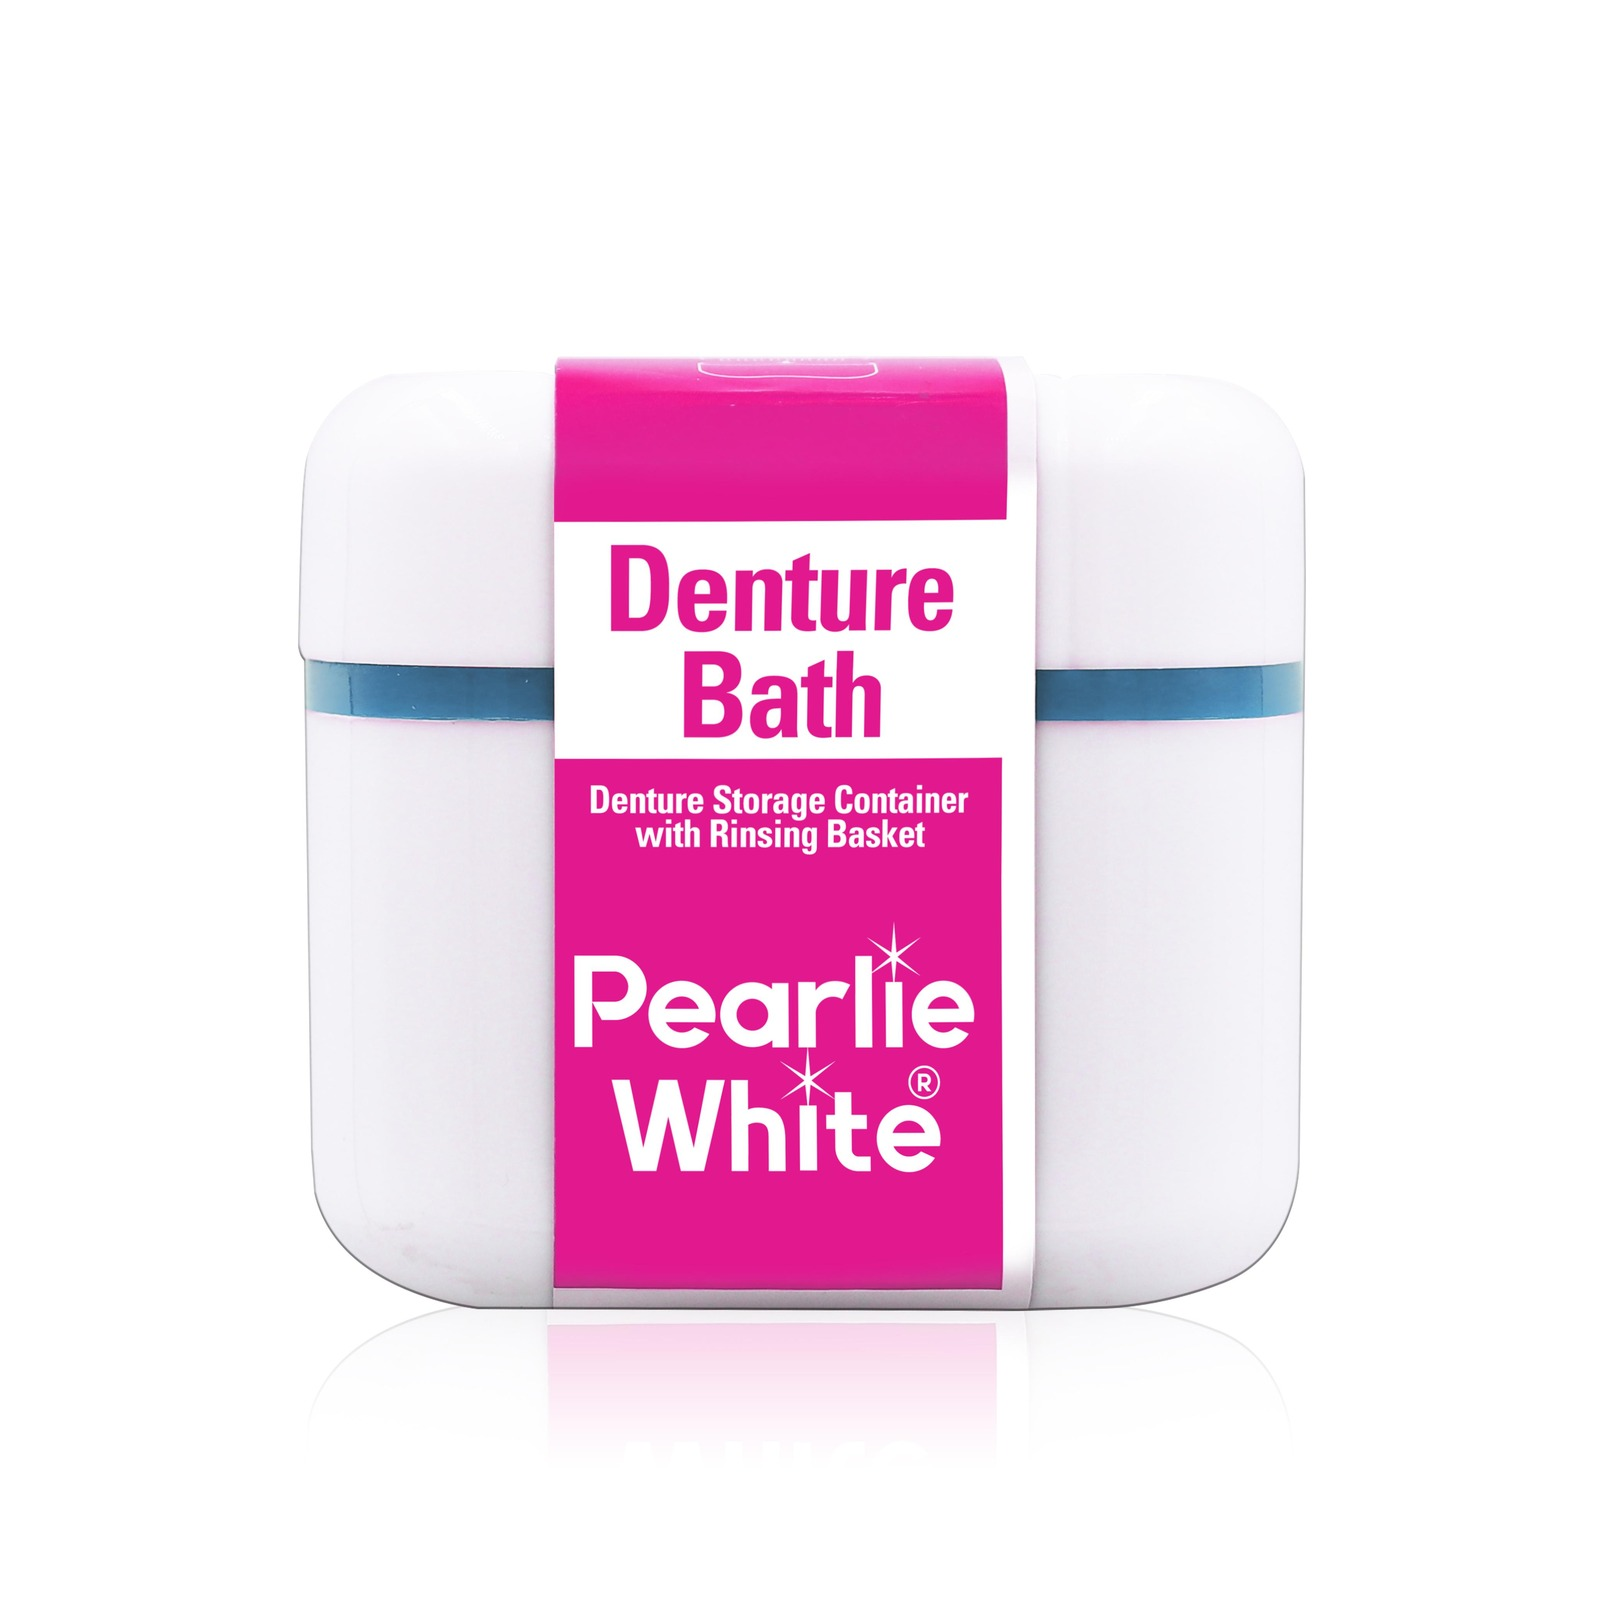 Pearlie White Denture Bath Denture Container with Rinsing Basket